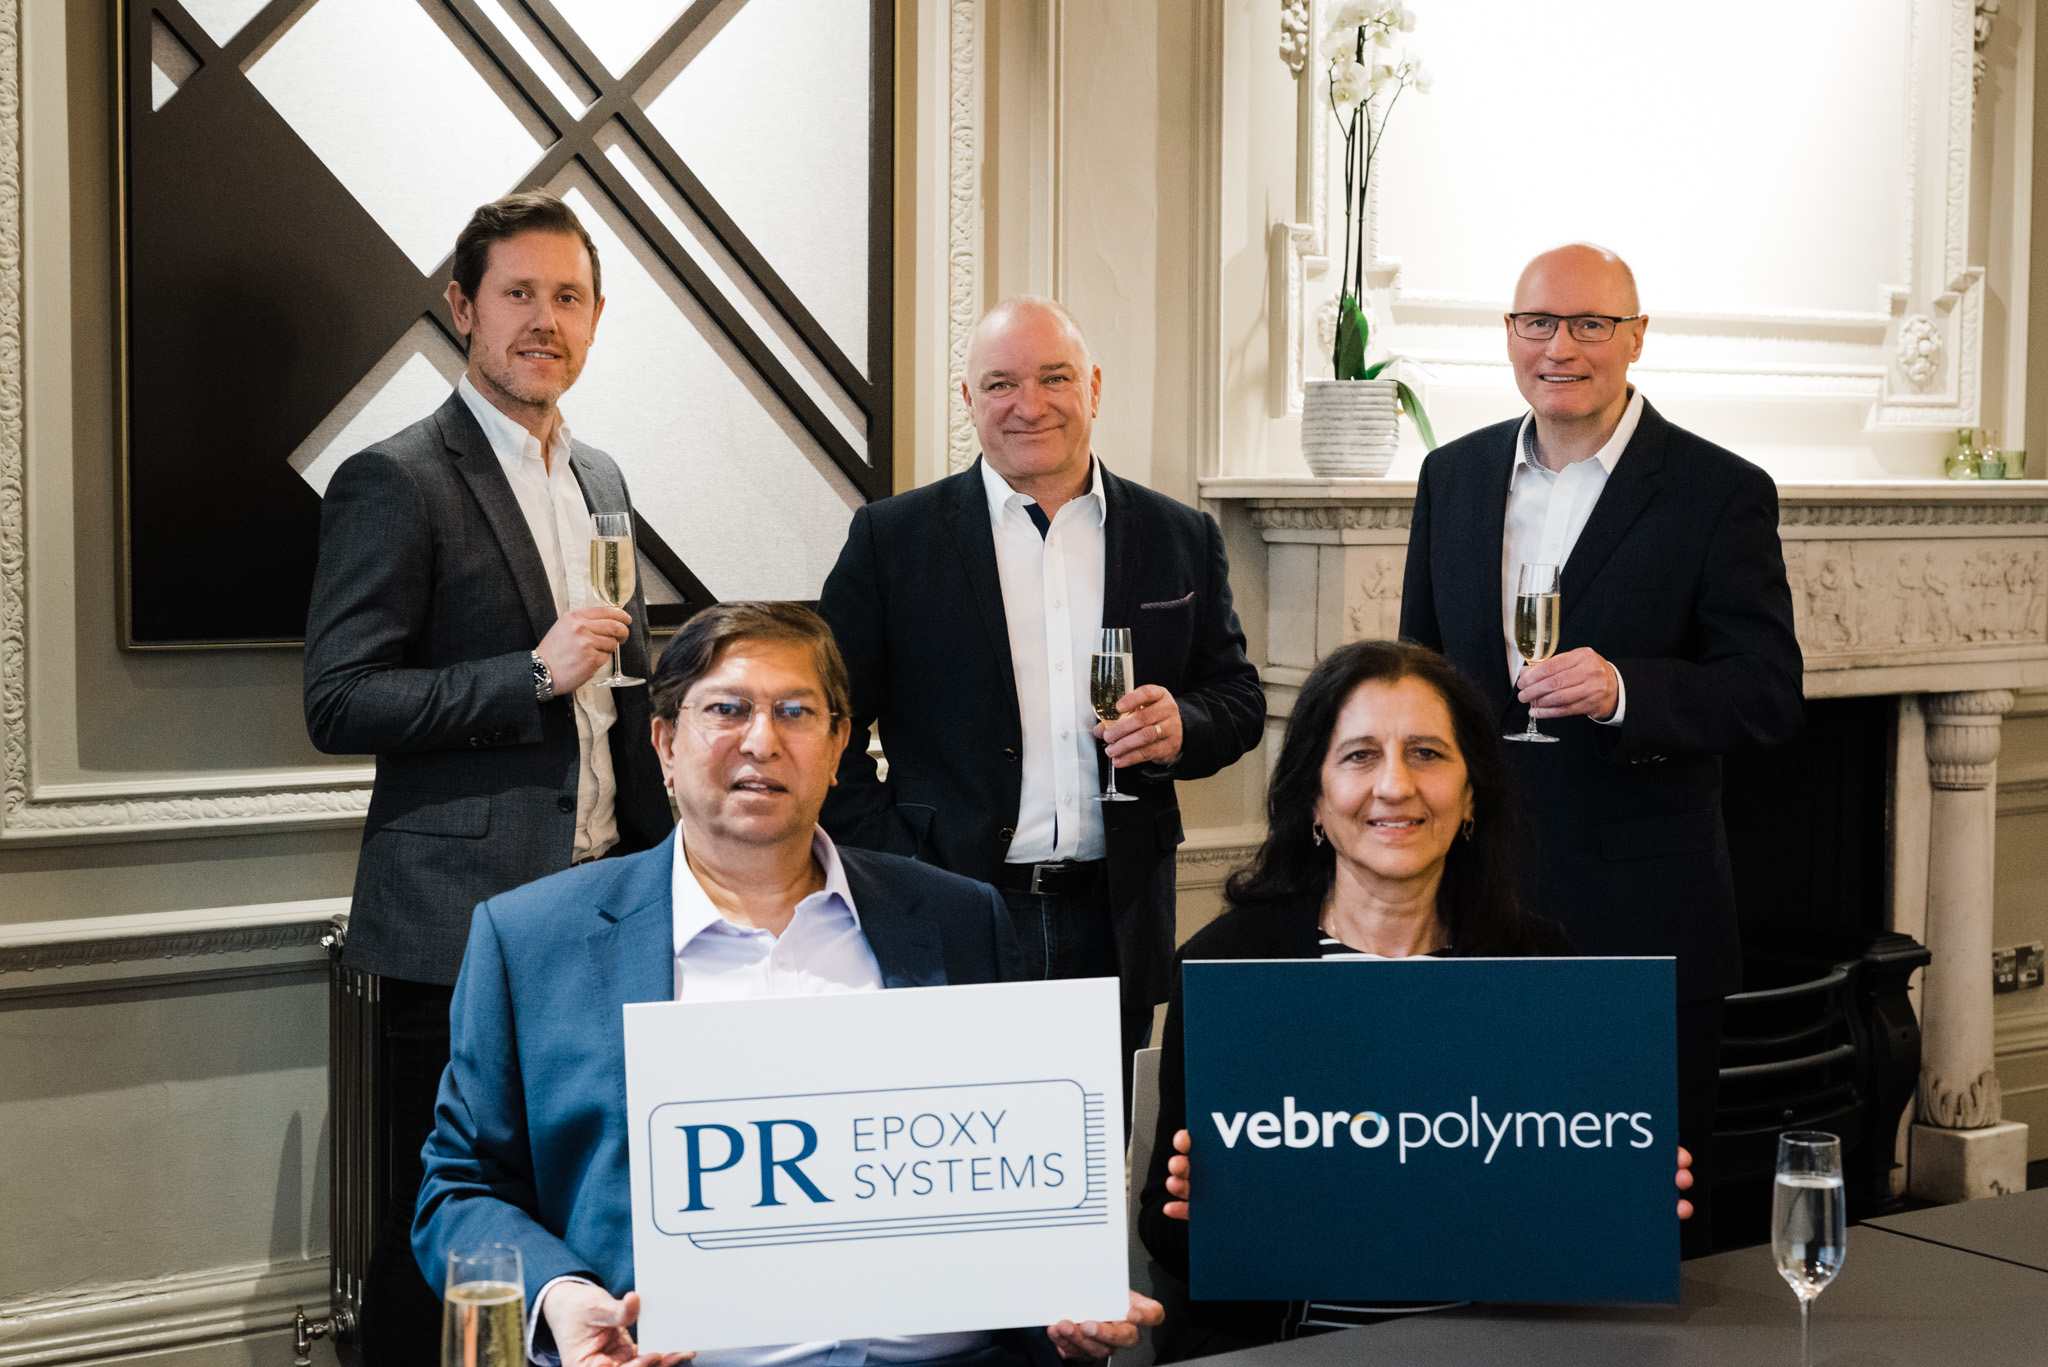 Vebro Polymers acquires PR Epoxy Systems